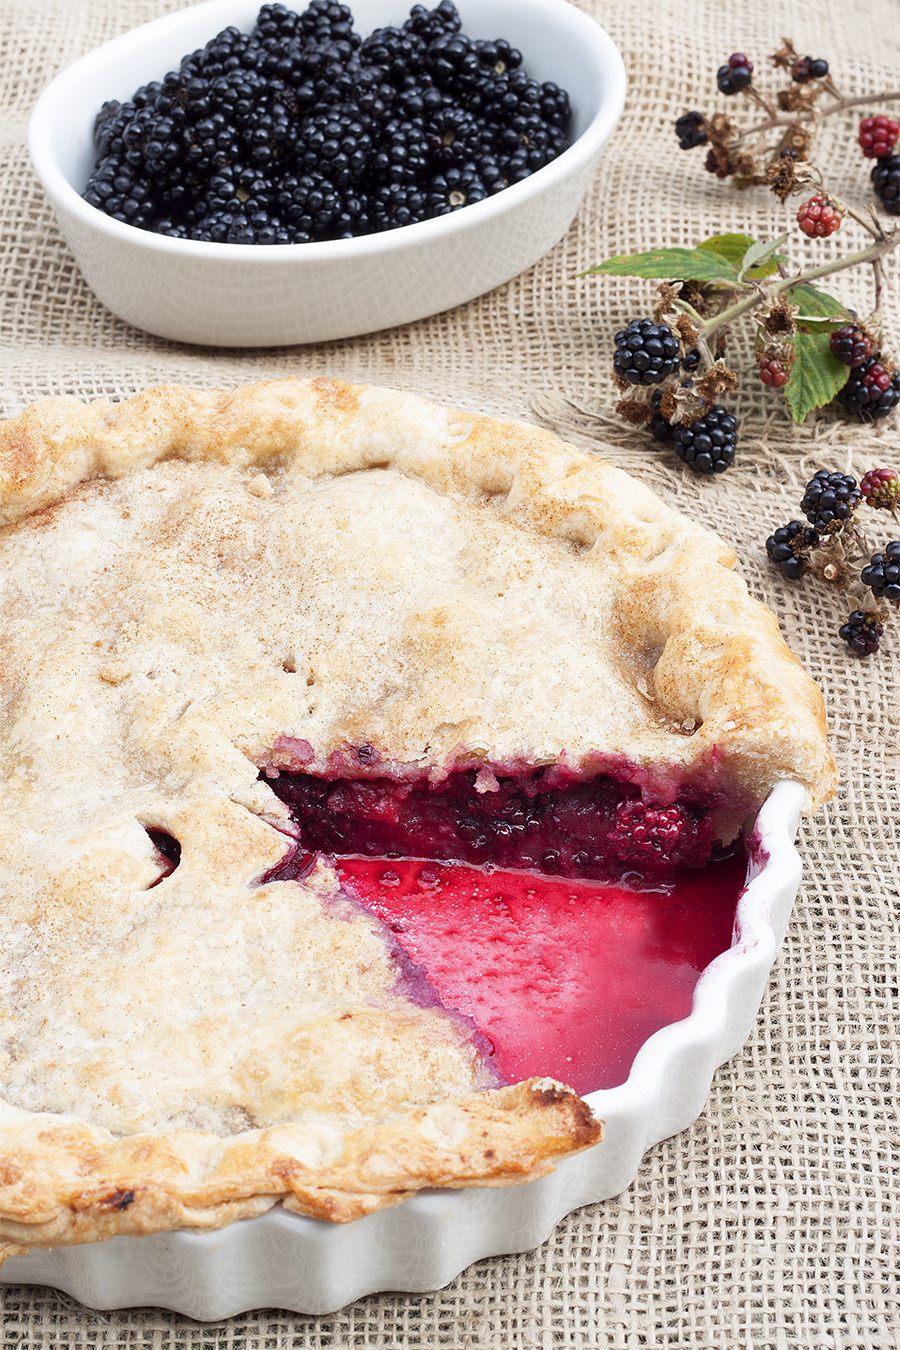 Traditional Homemade Blackberry and Apple Pie Recipe